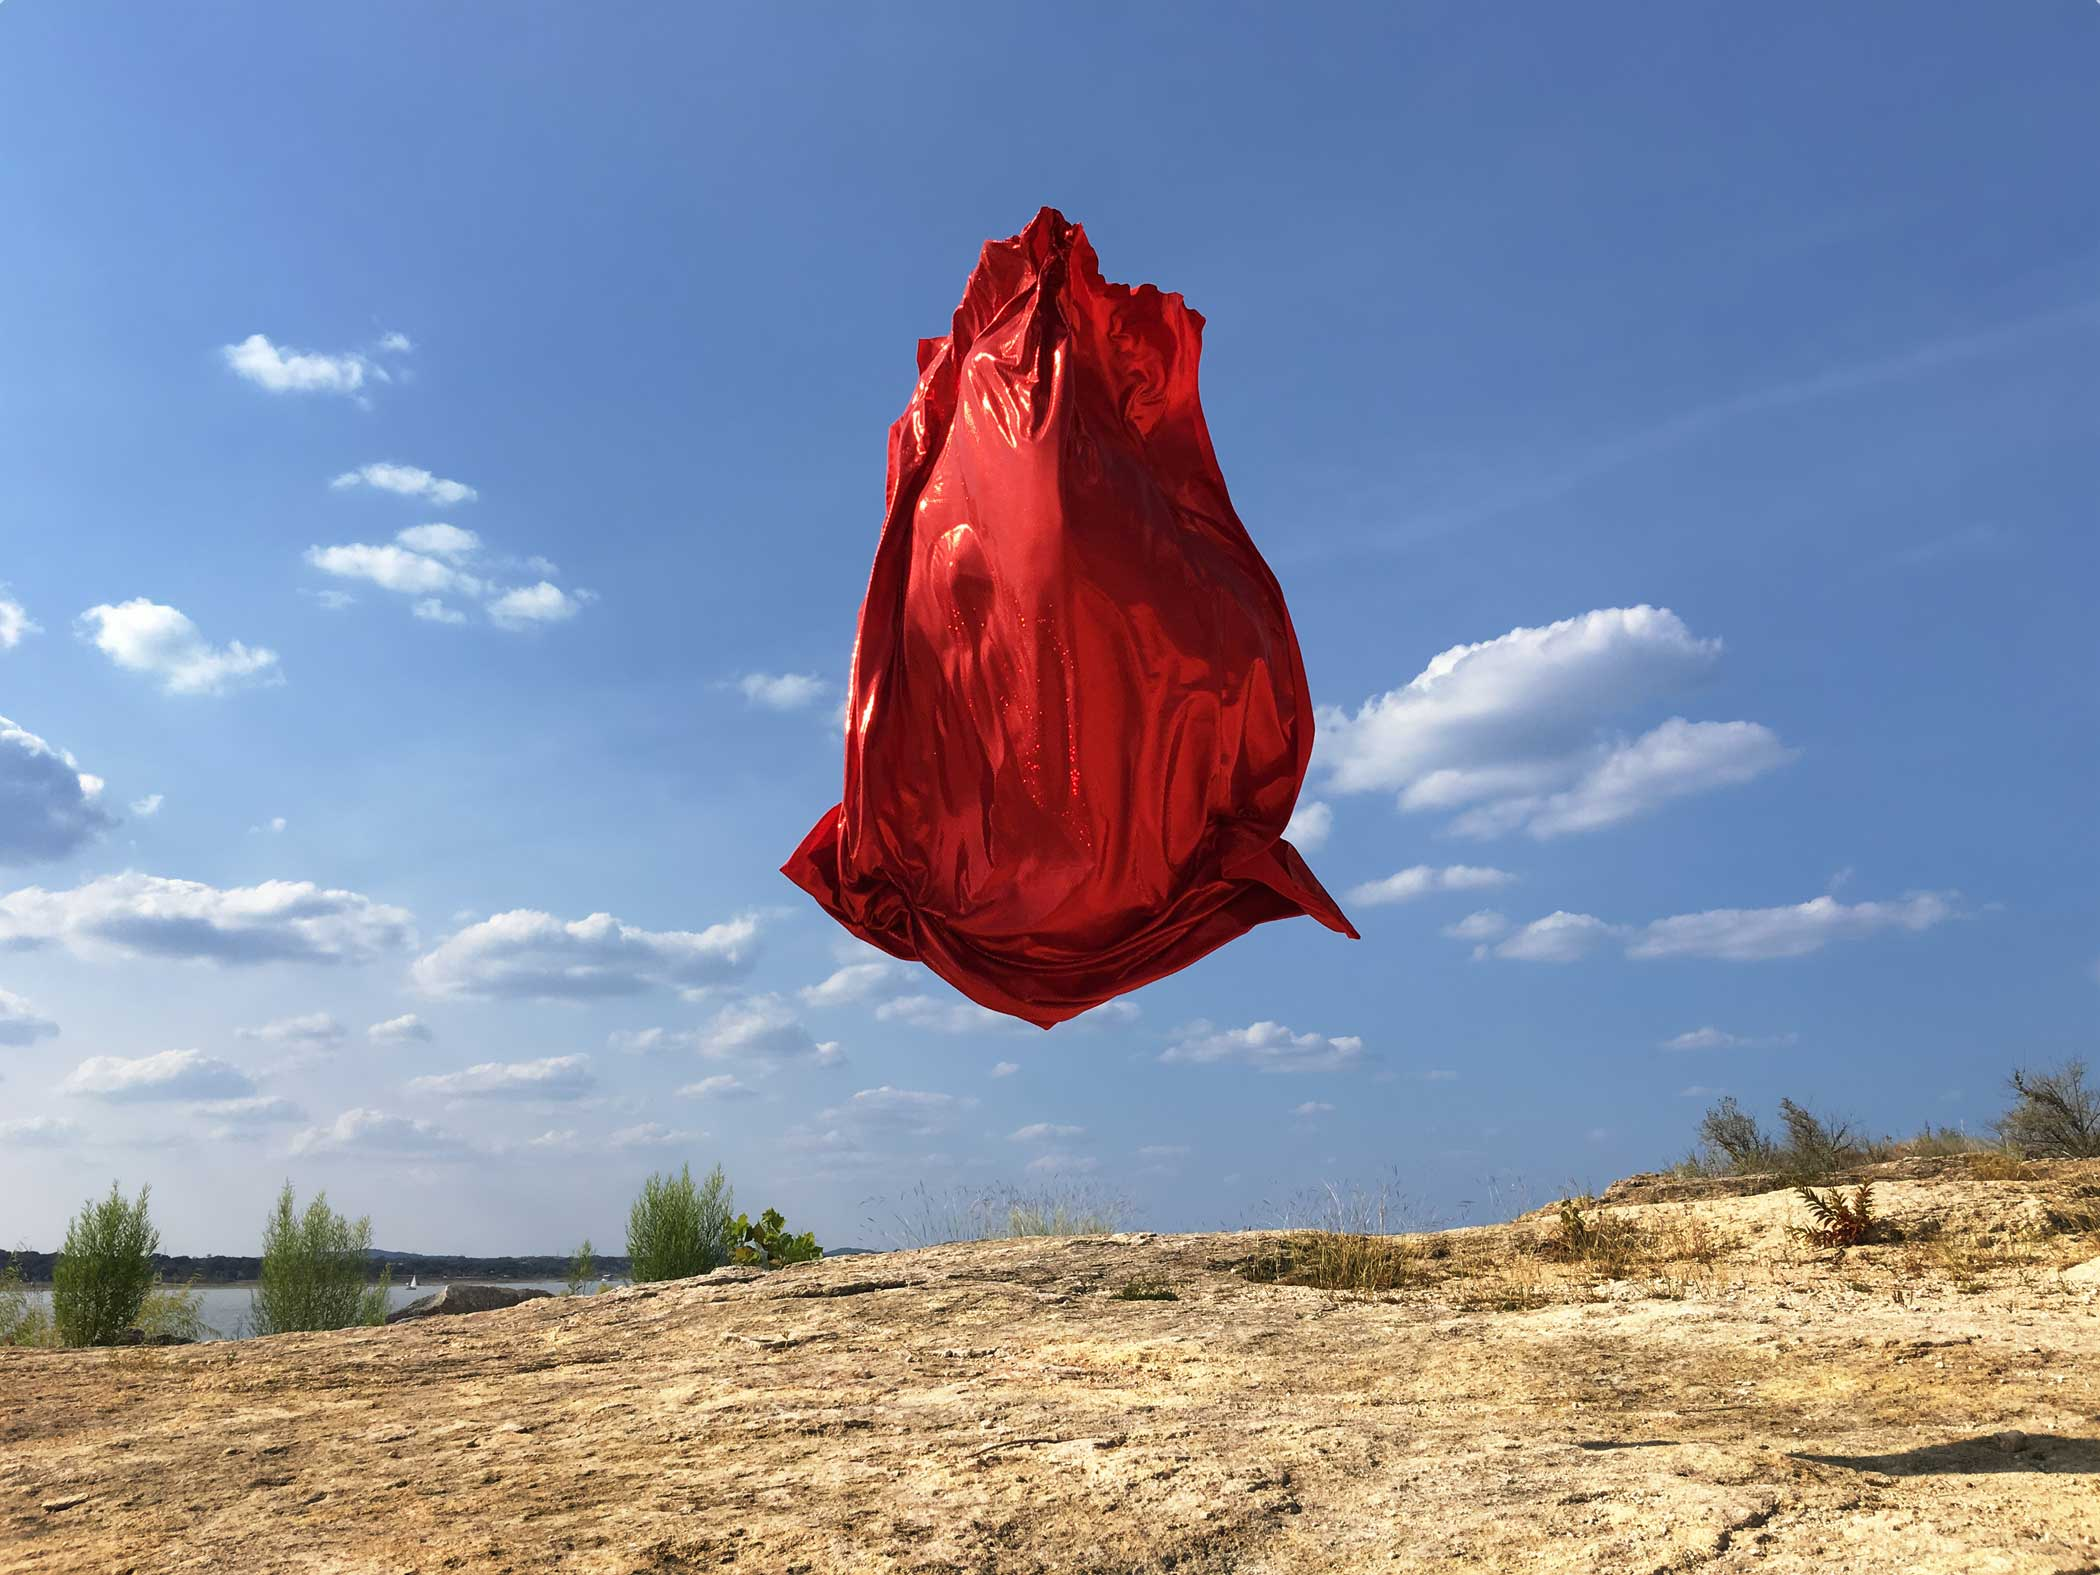 In Oneironaut, William Hundley uses the iPhone 6s Plus, a vivid piece of fabric, and an athletic friend to create the illusion of a floating object. The result is an unedited photo that's vibrant, bold, and magical.